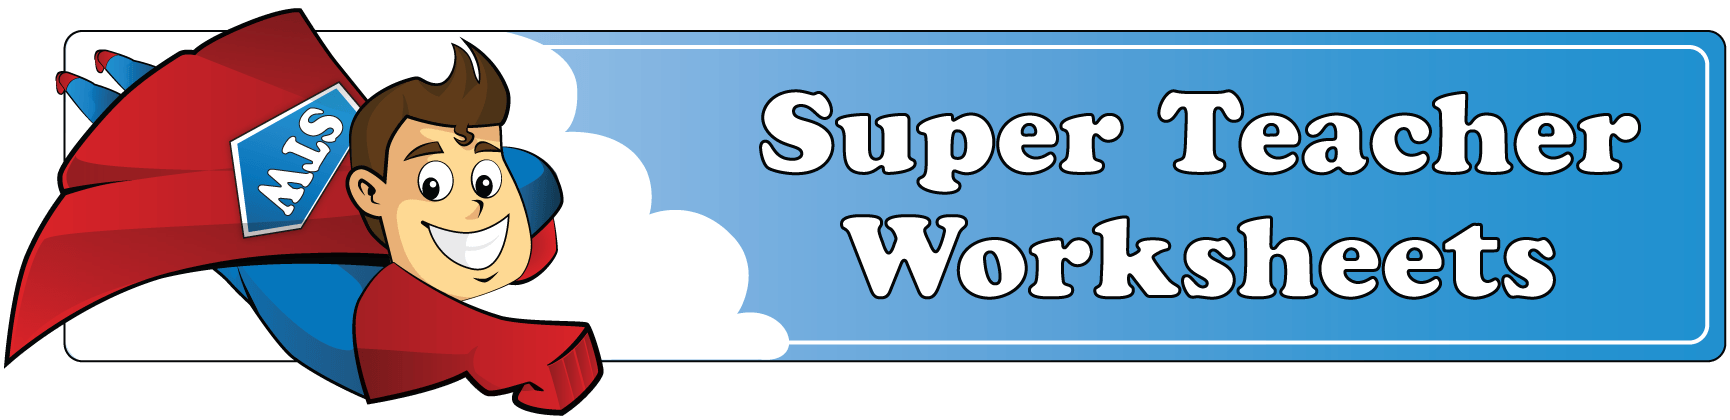 Log In to Super Teacher Worksheets – Free Super Teacher Worksheets